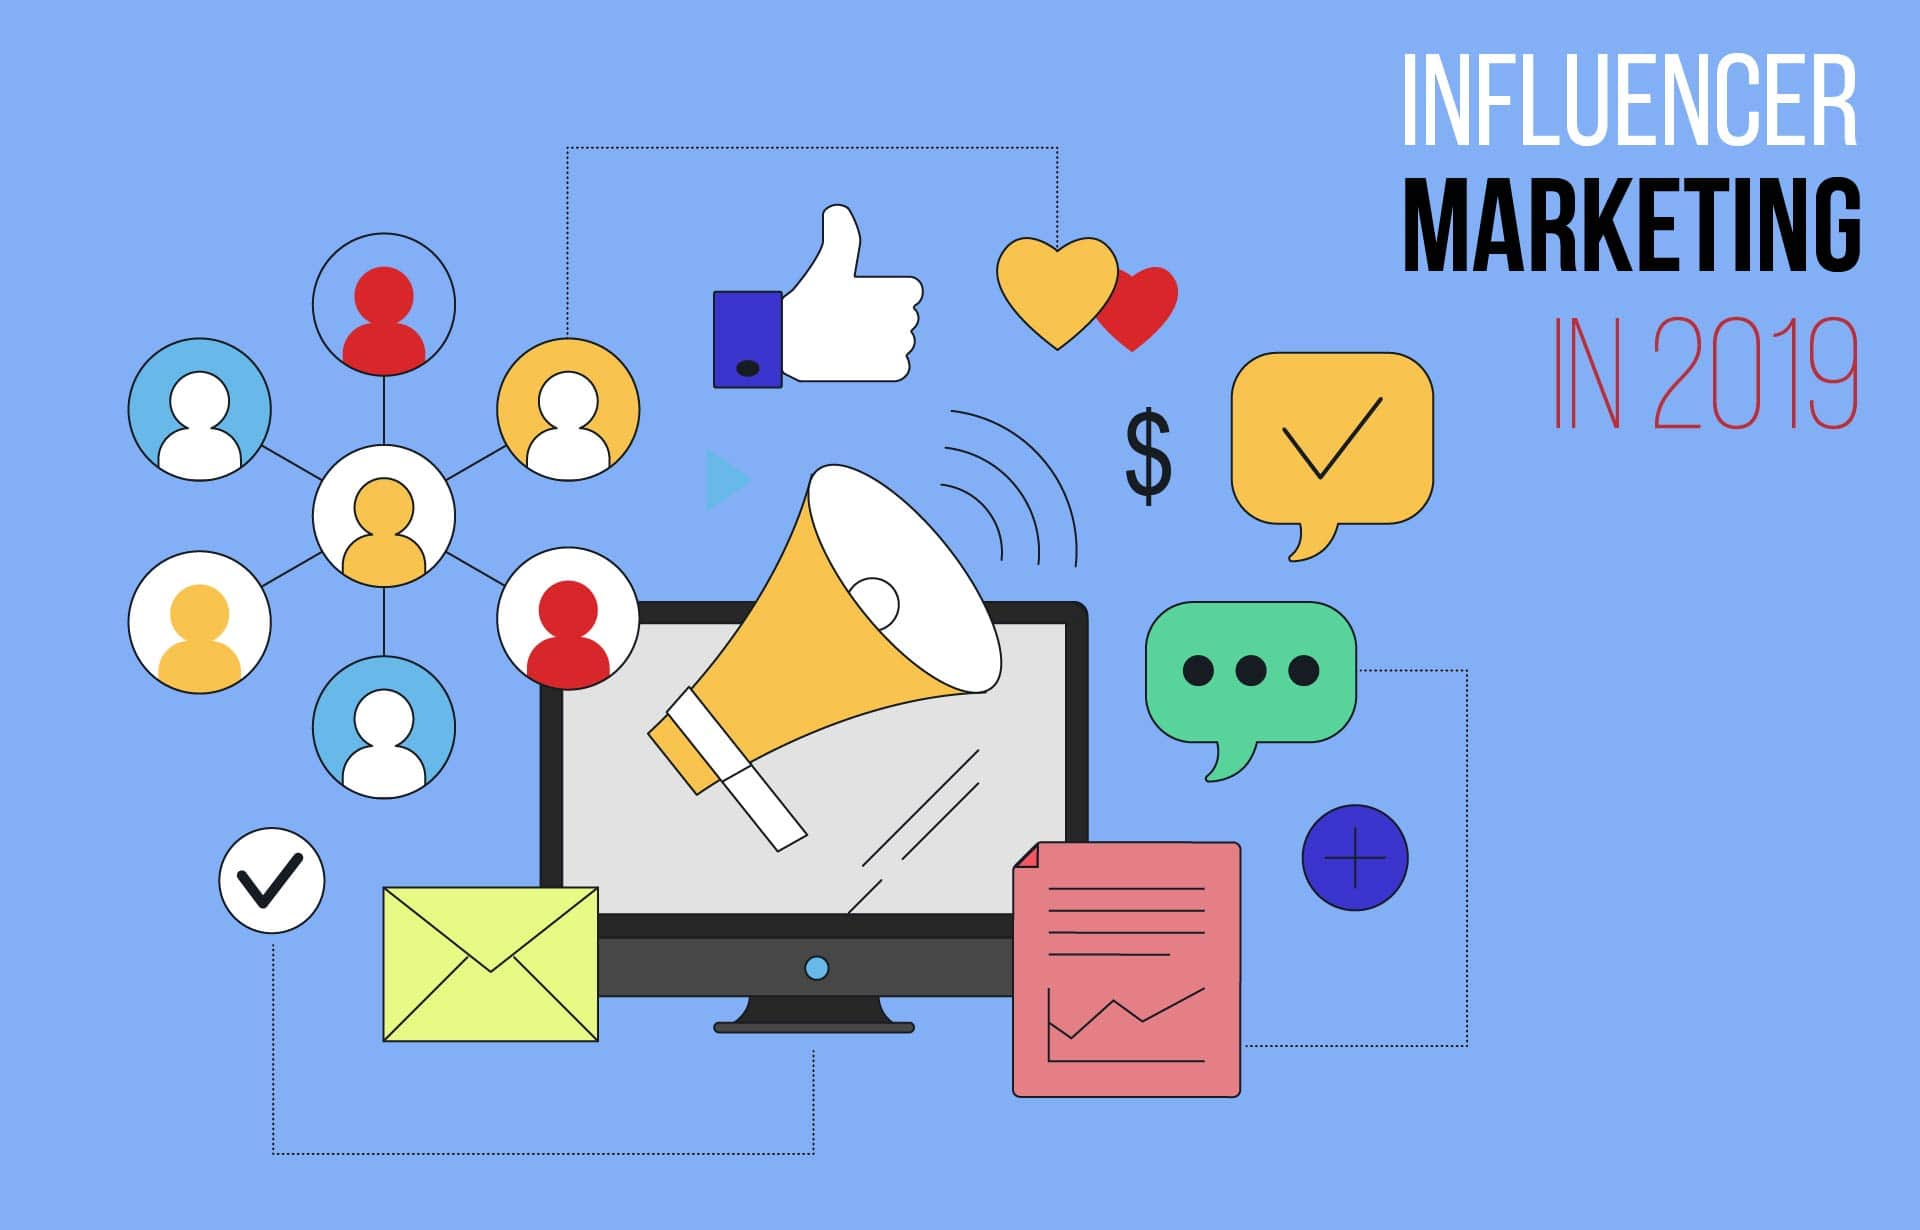 Everything You Need to Know About Influencer Marketing in 2019